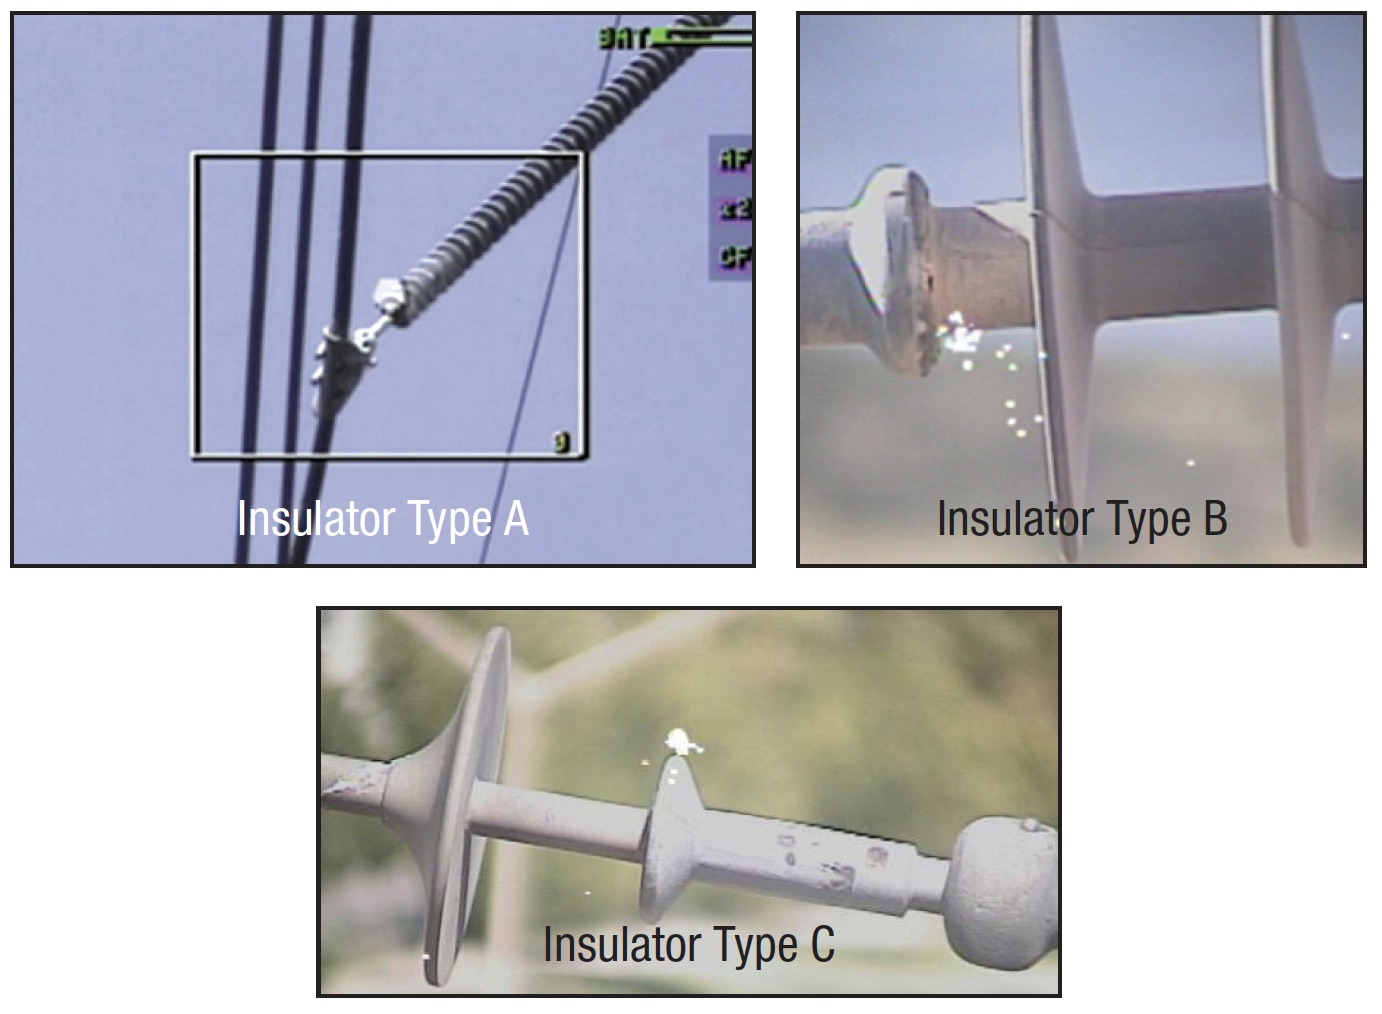 Assessing & Mitigating Corona on Composite Line Insulators